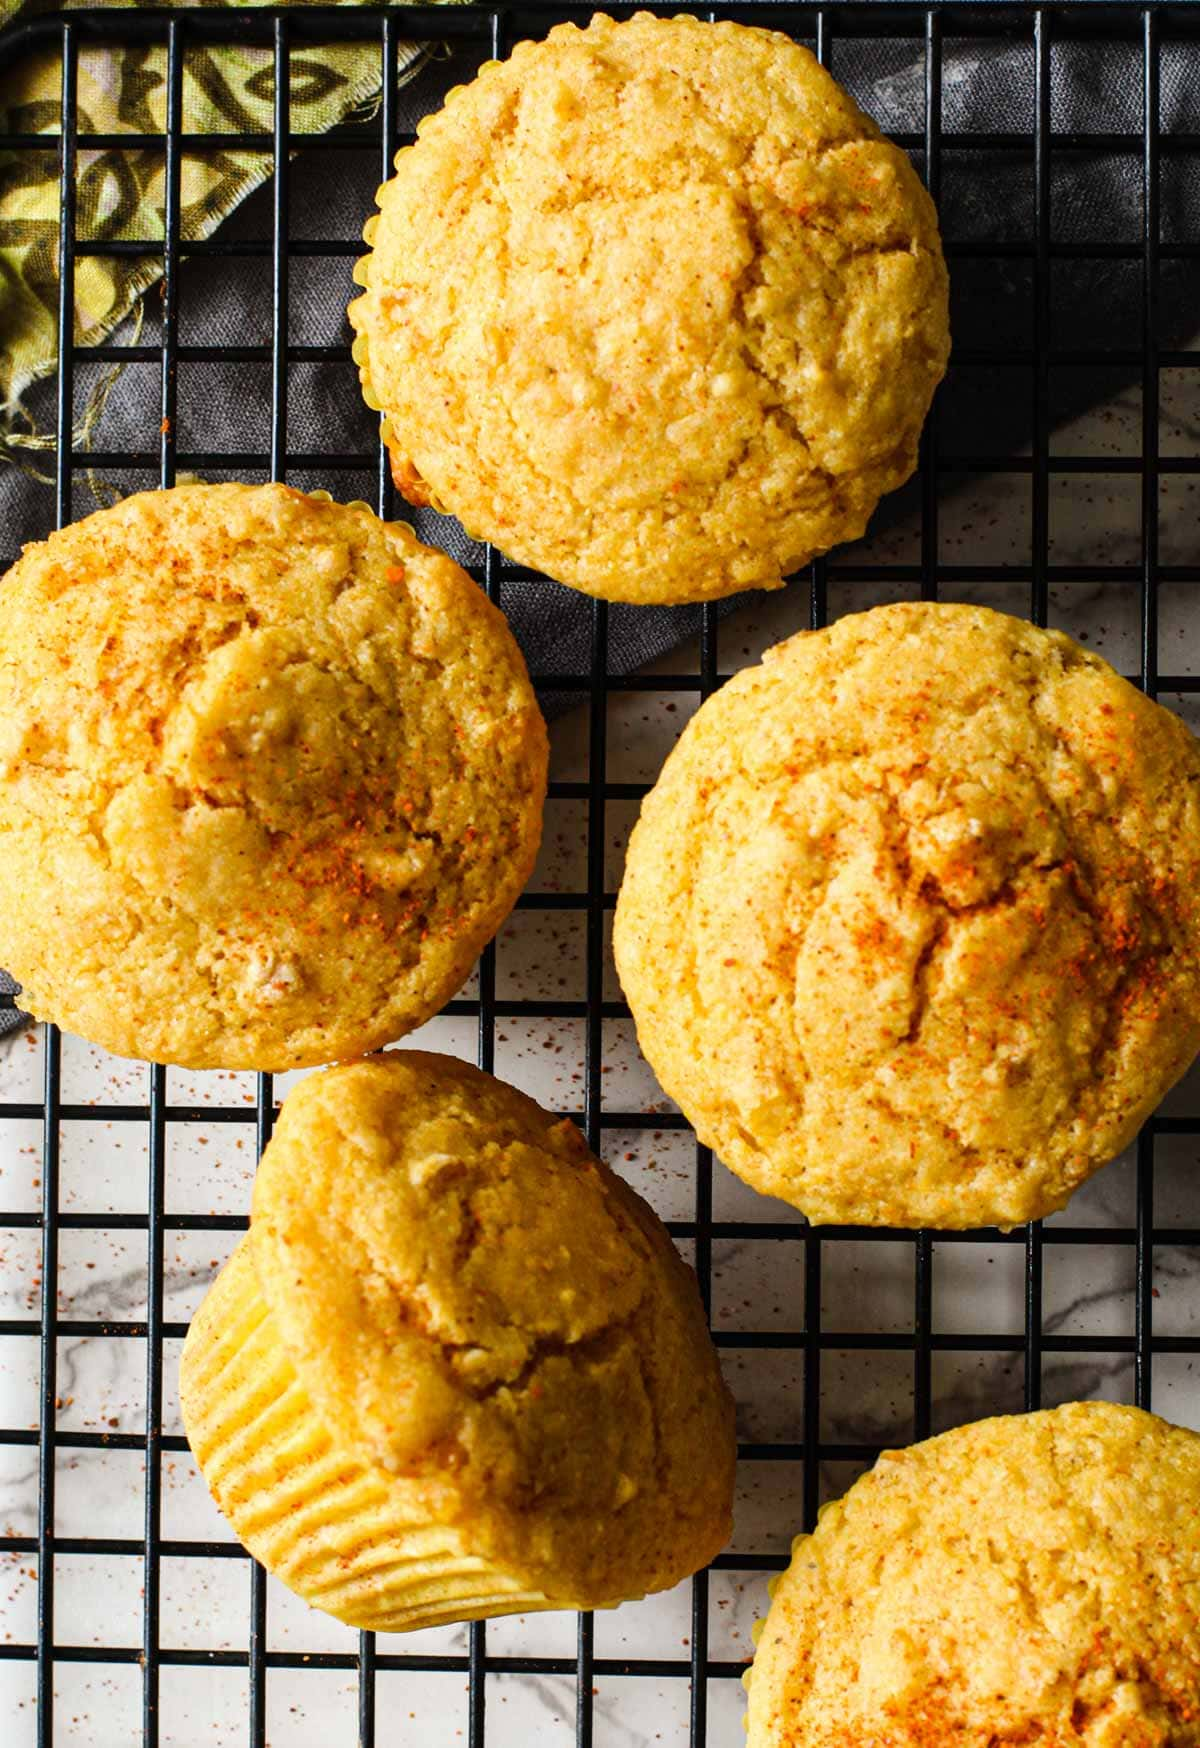 Cornbread muffins cooling on a black wire rack.